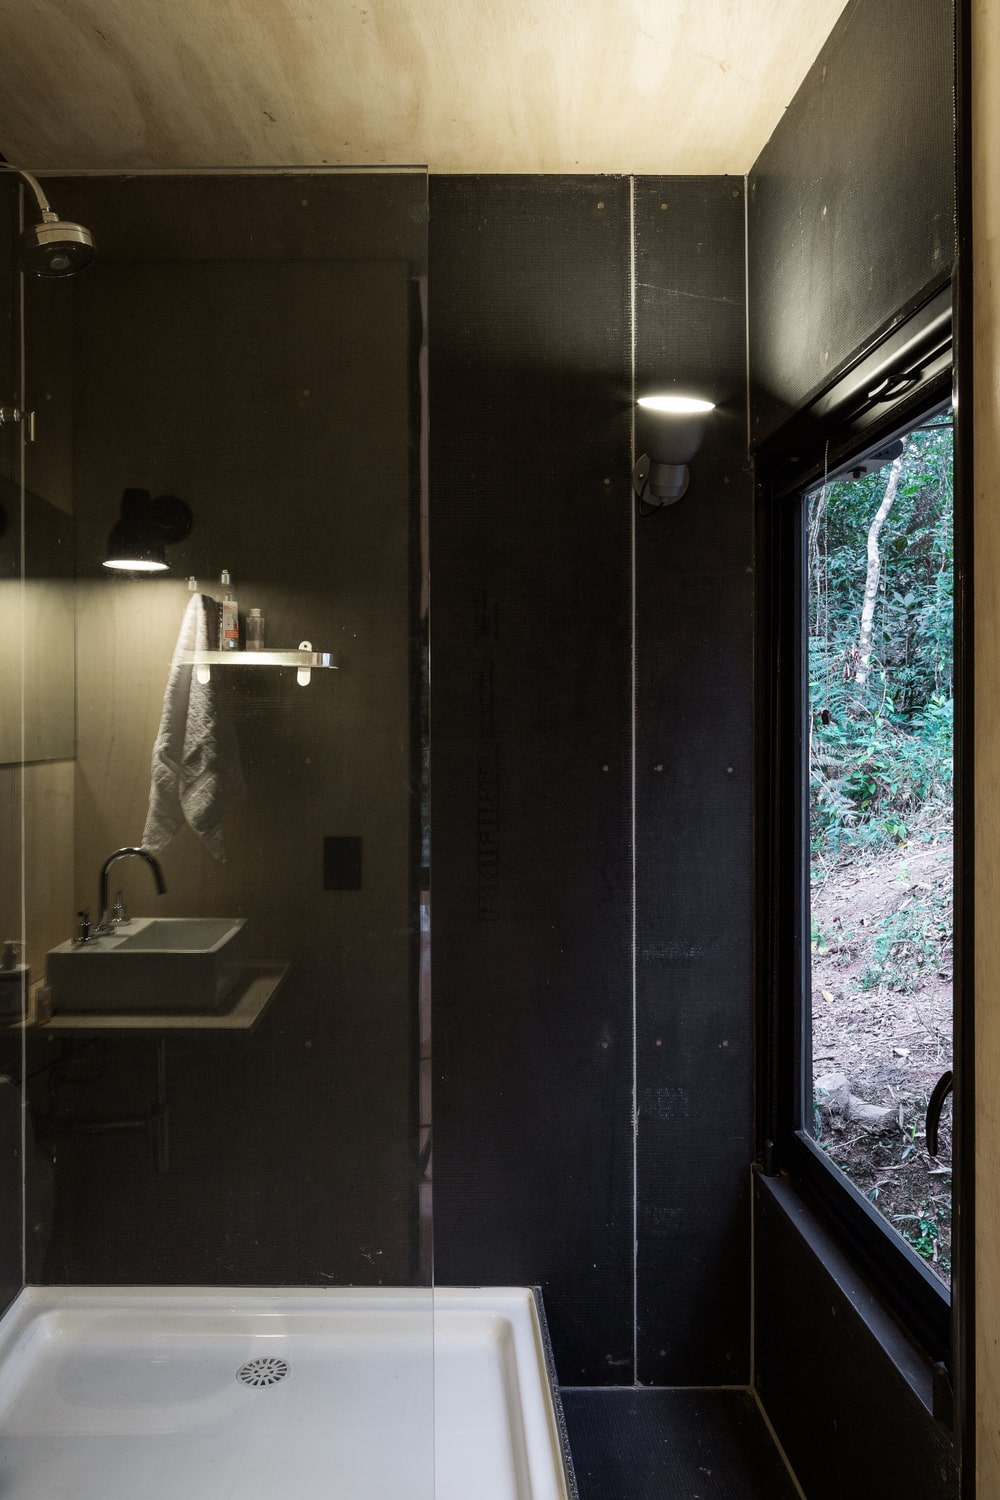 This is a close look at the glass-enclose shower area of the bathroom.